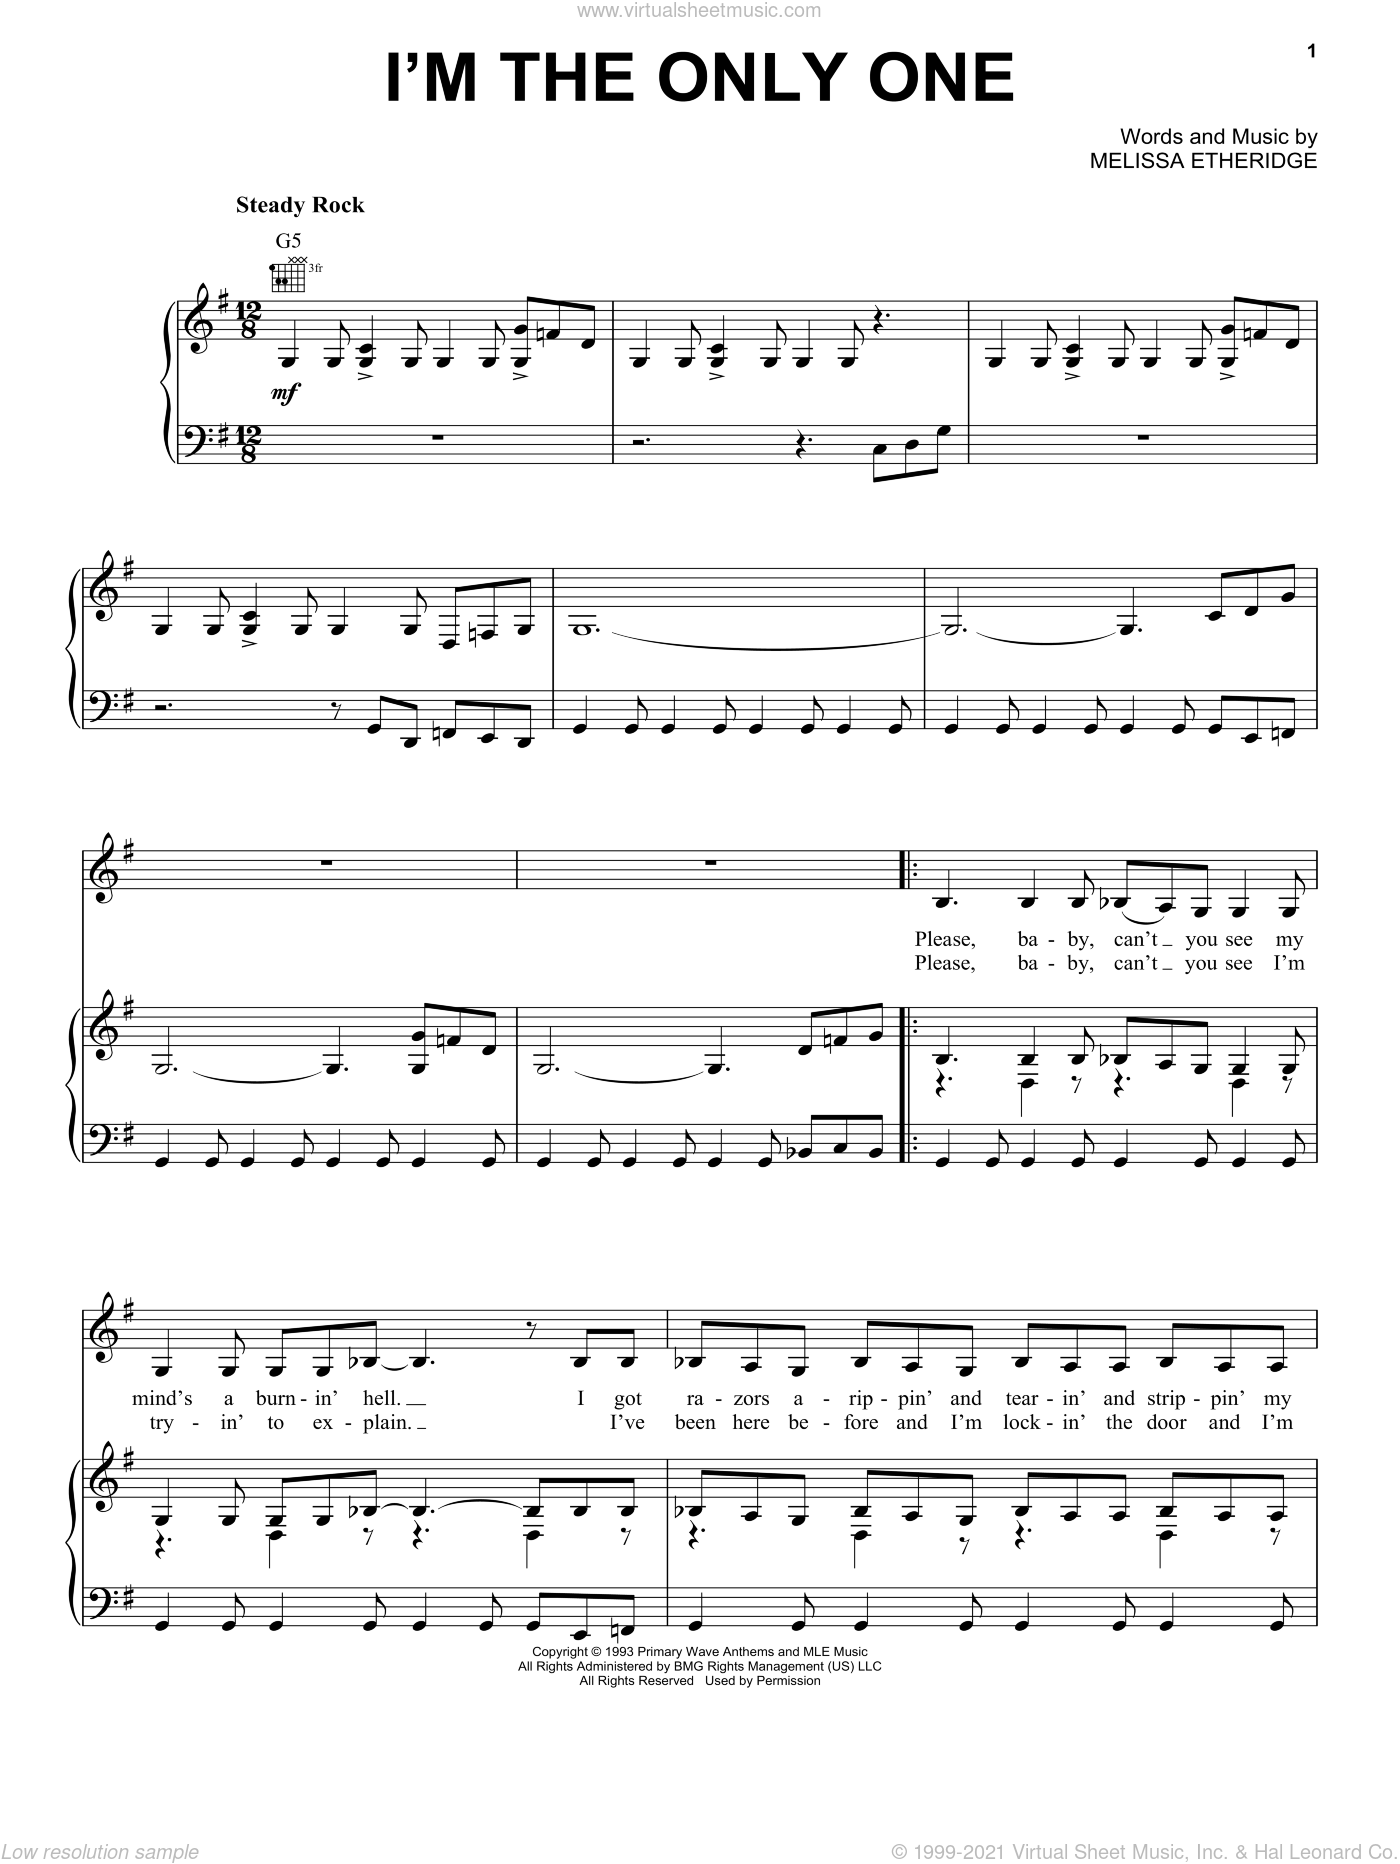 I'm The Only One sheet music for voice, piano or guitar by Melissa Etheridge, intermediate skill level